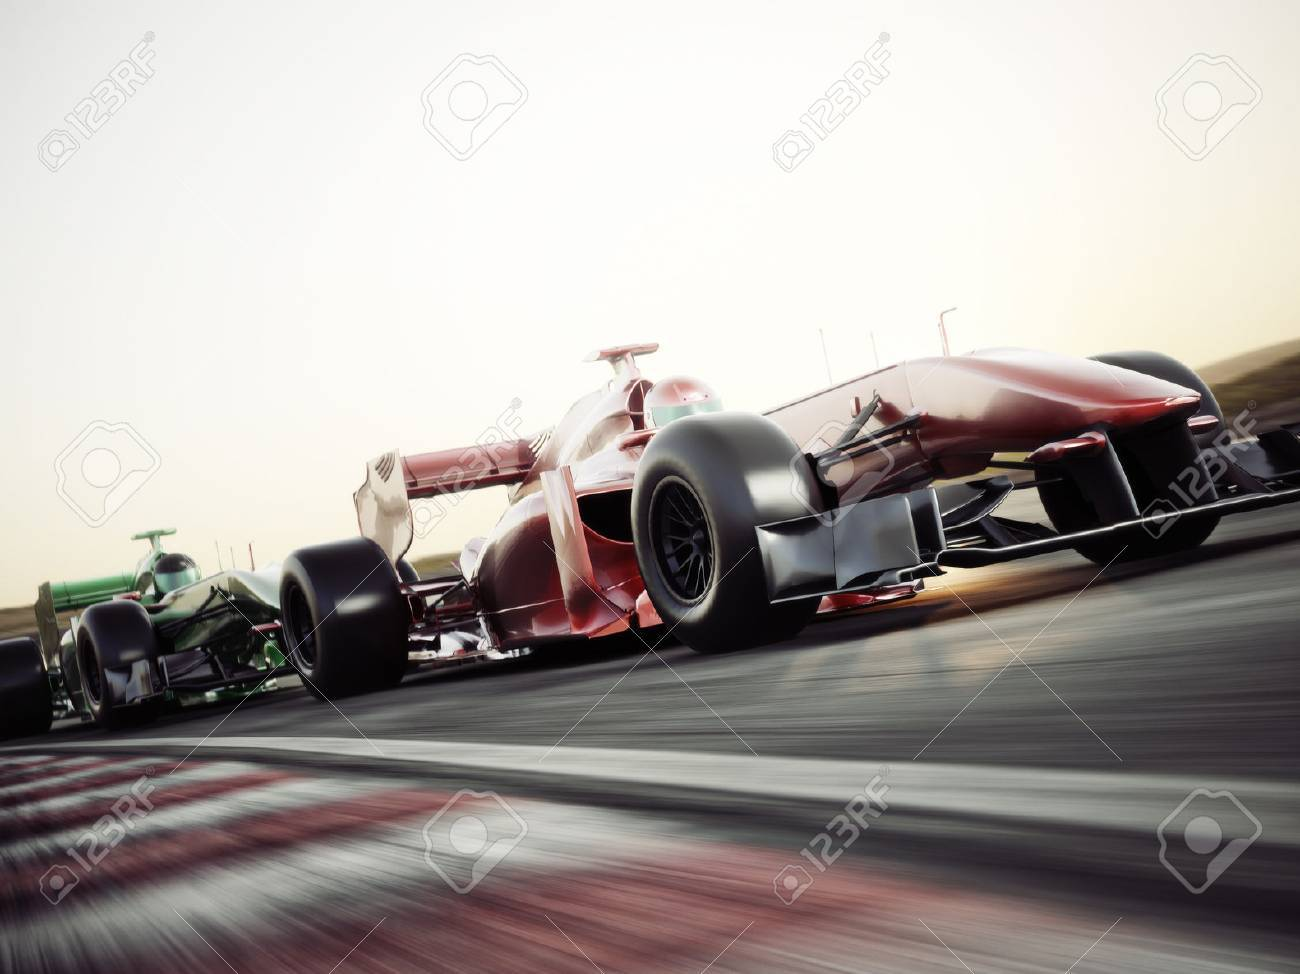 Motor sports competitive team racing. Fast moving race cars racing down the track . 3d rendering. With room for text or copy space Standard-Bild - 71737263